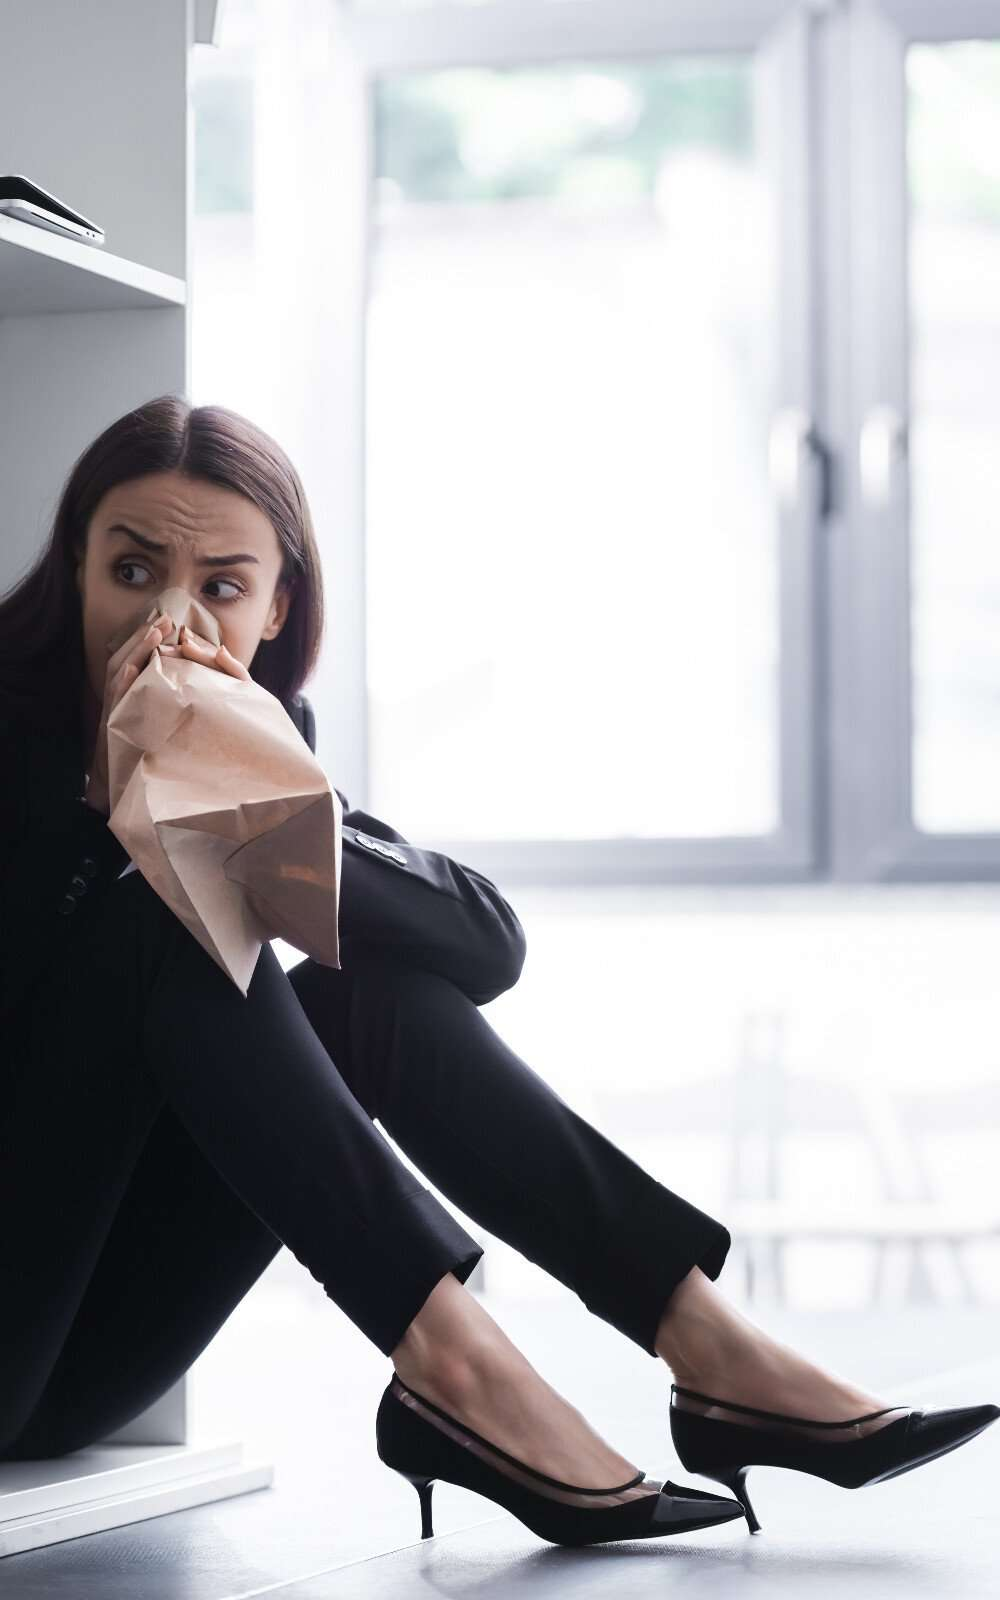 a woman hyperventilating because of a fear of speaking in public